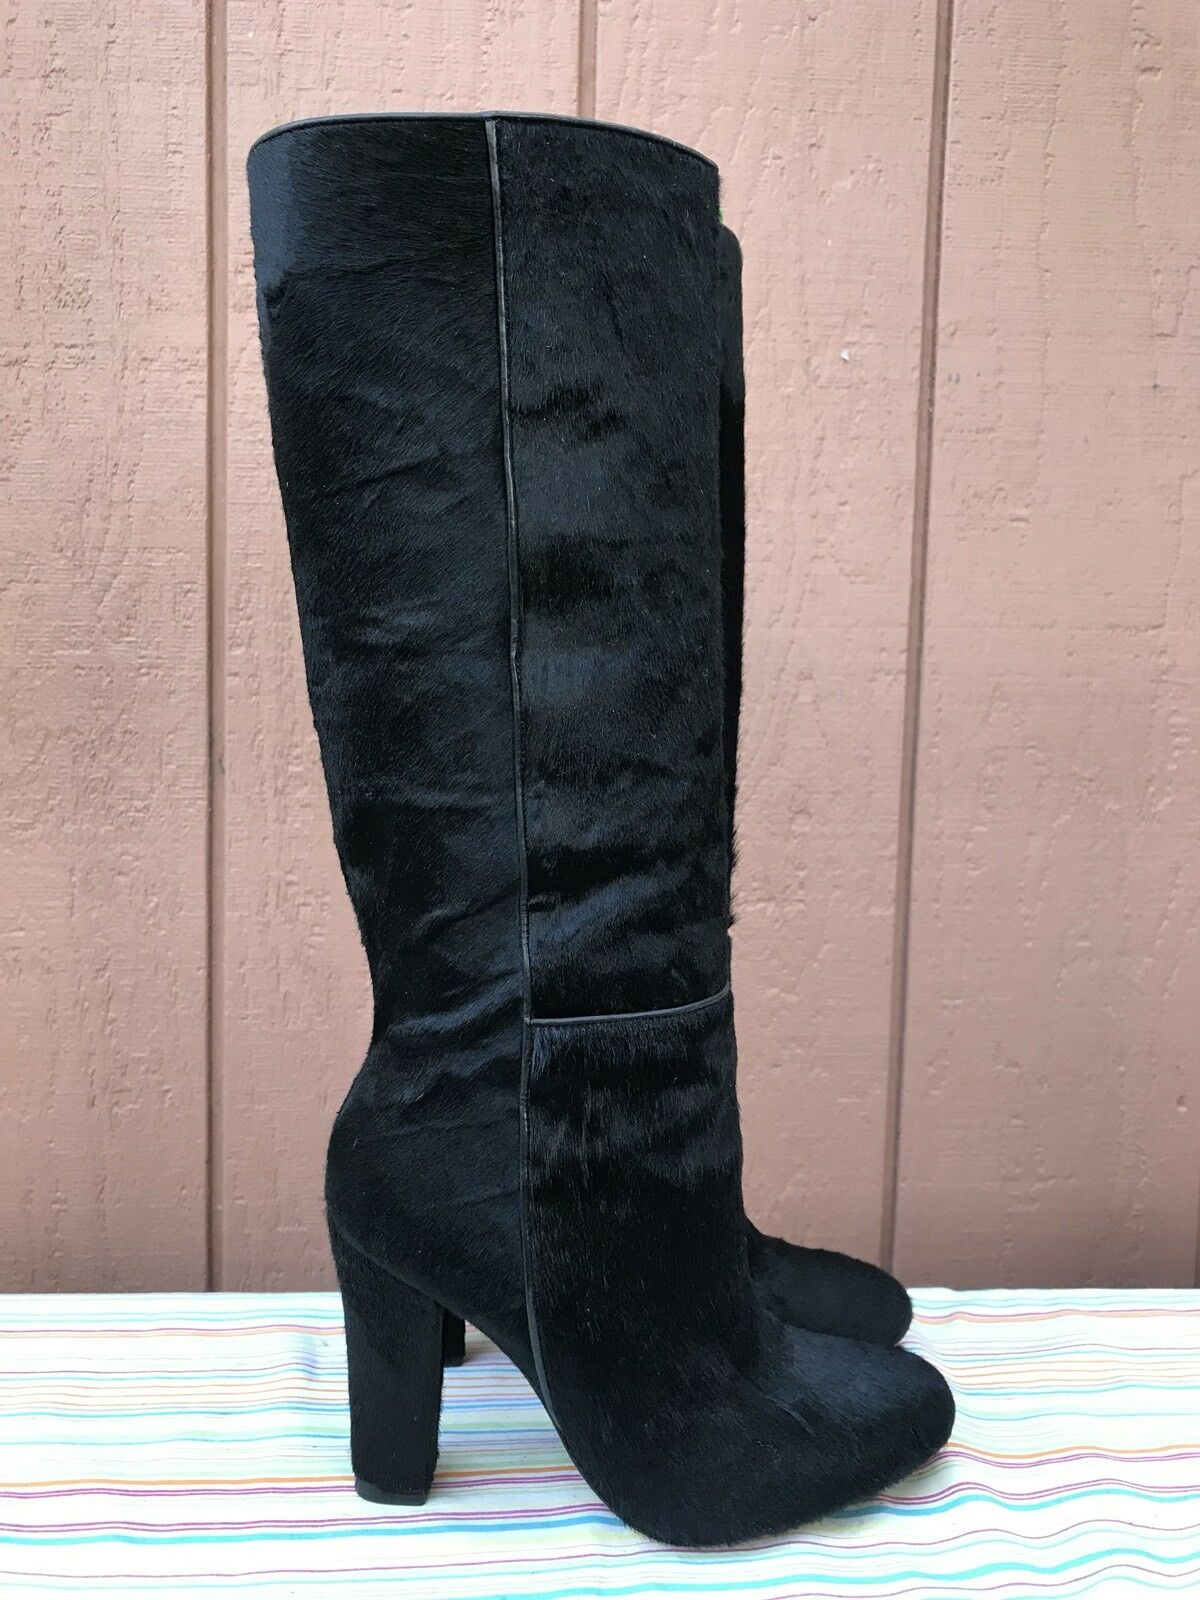 RARE EUC Alexandre Birman Women's US 6.5 Black Pony Hair Boots $1400